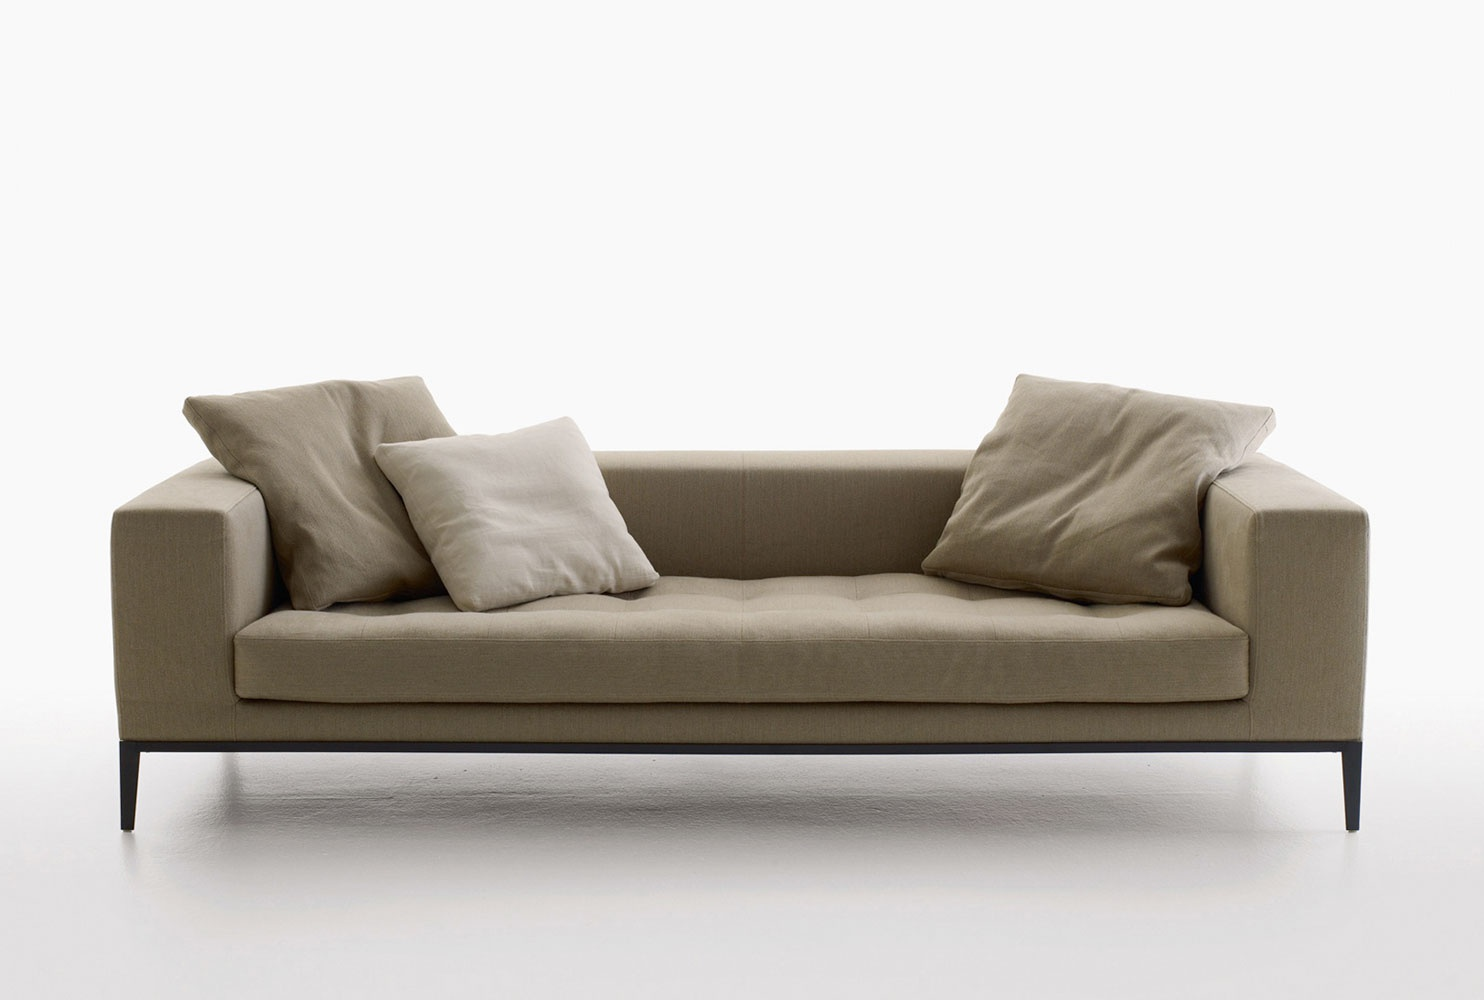 A sofa with a low back simplex maxalto luxury furniture mr - Sofa gratis ...